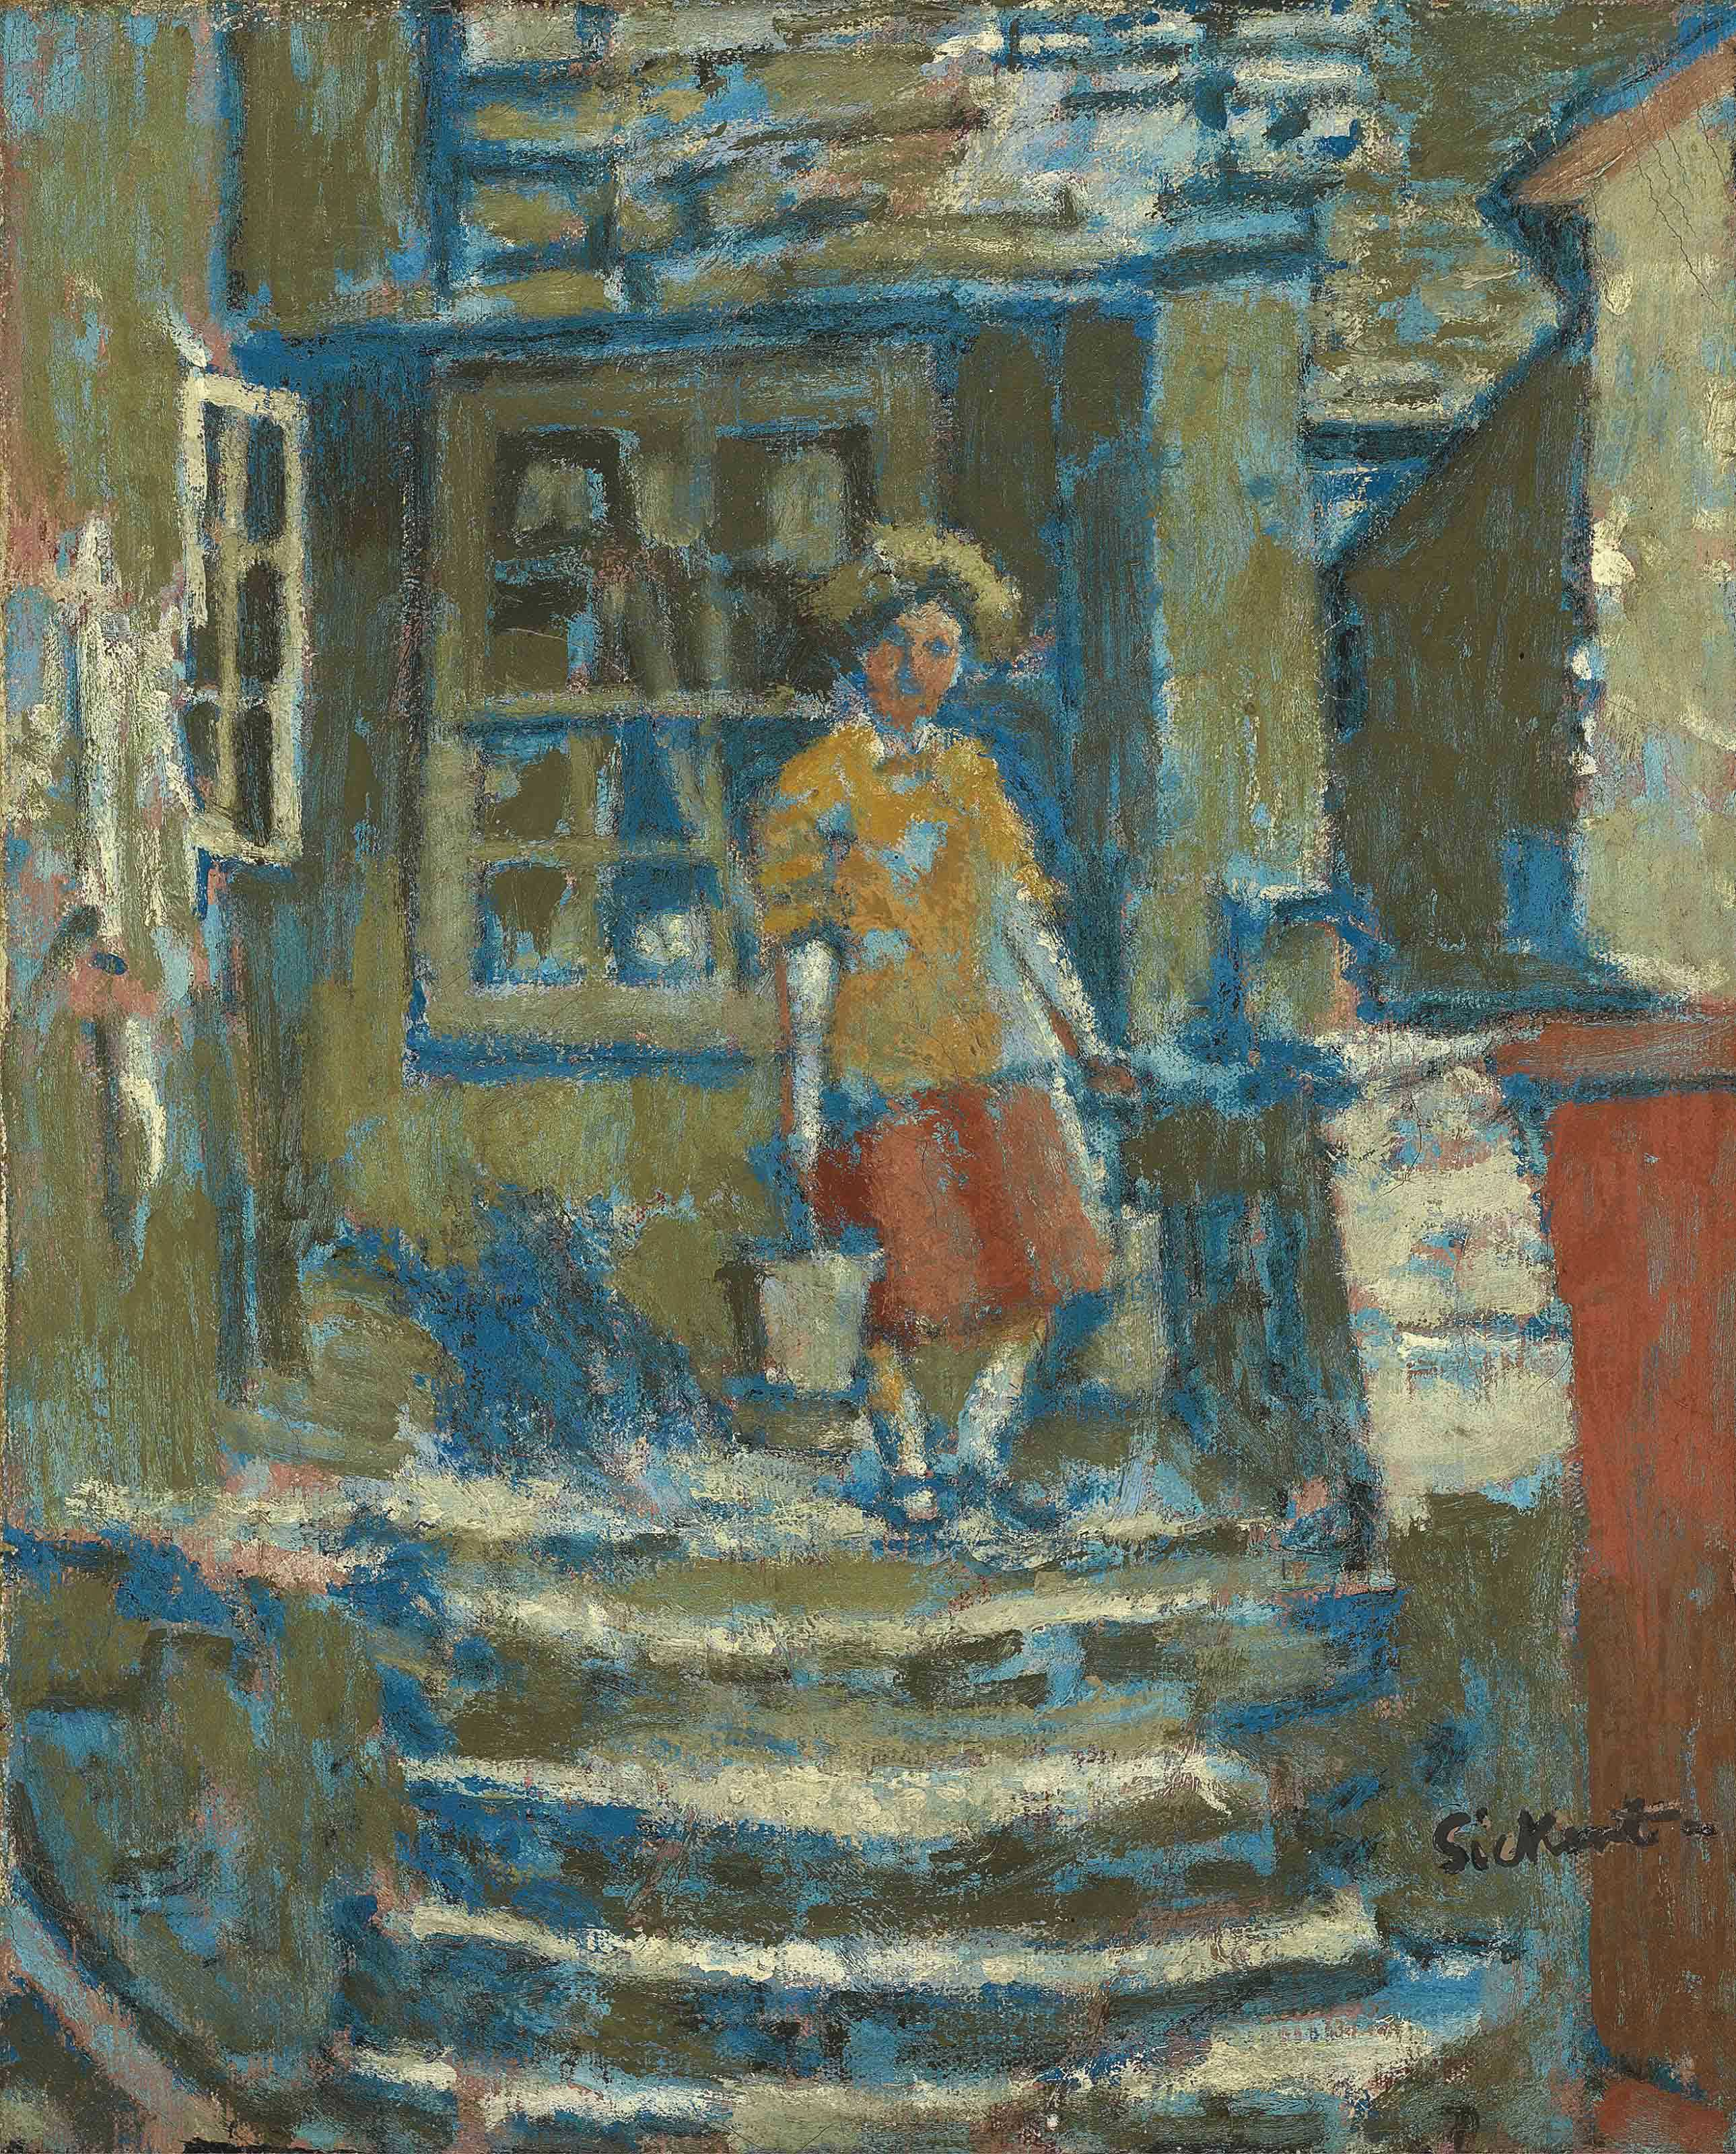 Walter Richard Sickert, A.R.A. (1860-1942)